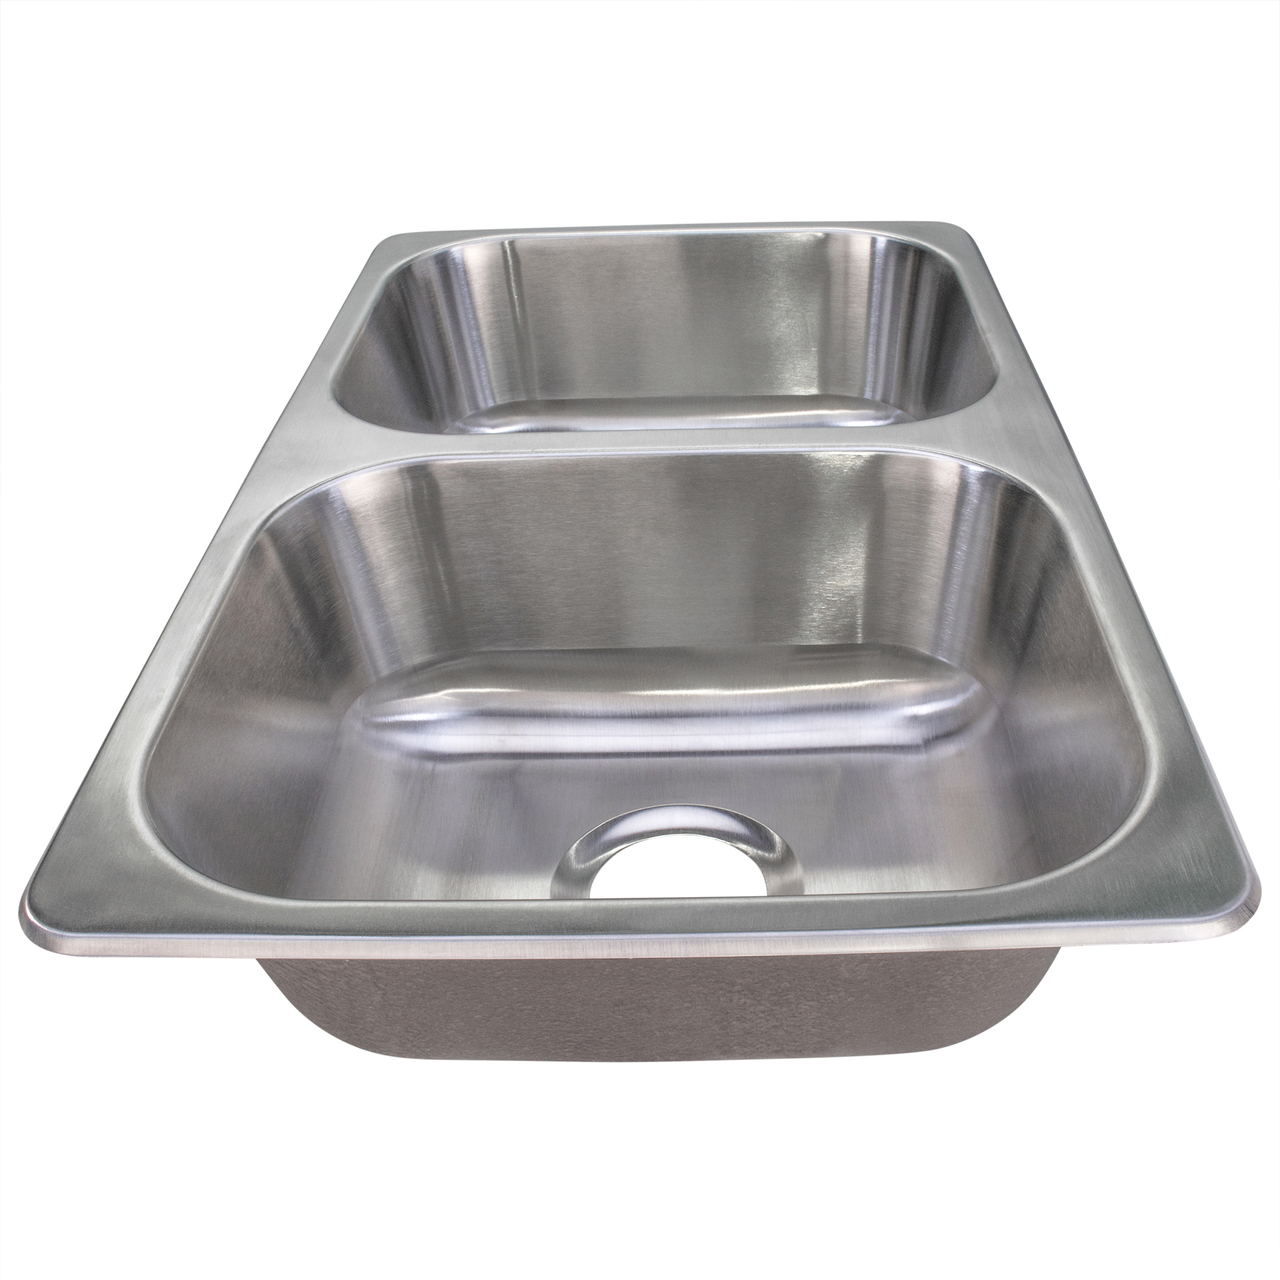 double stainless steel rv sink 27 x 16 x 7